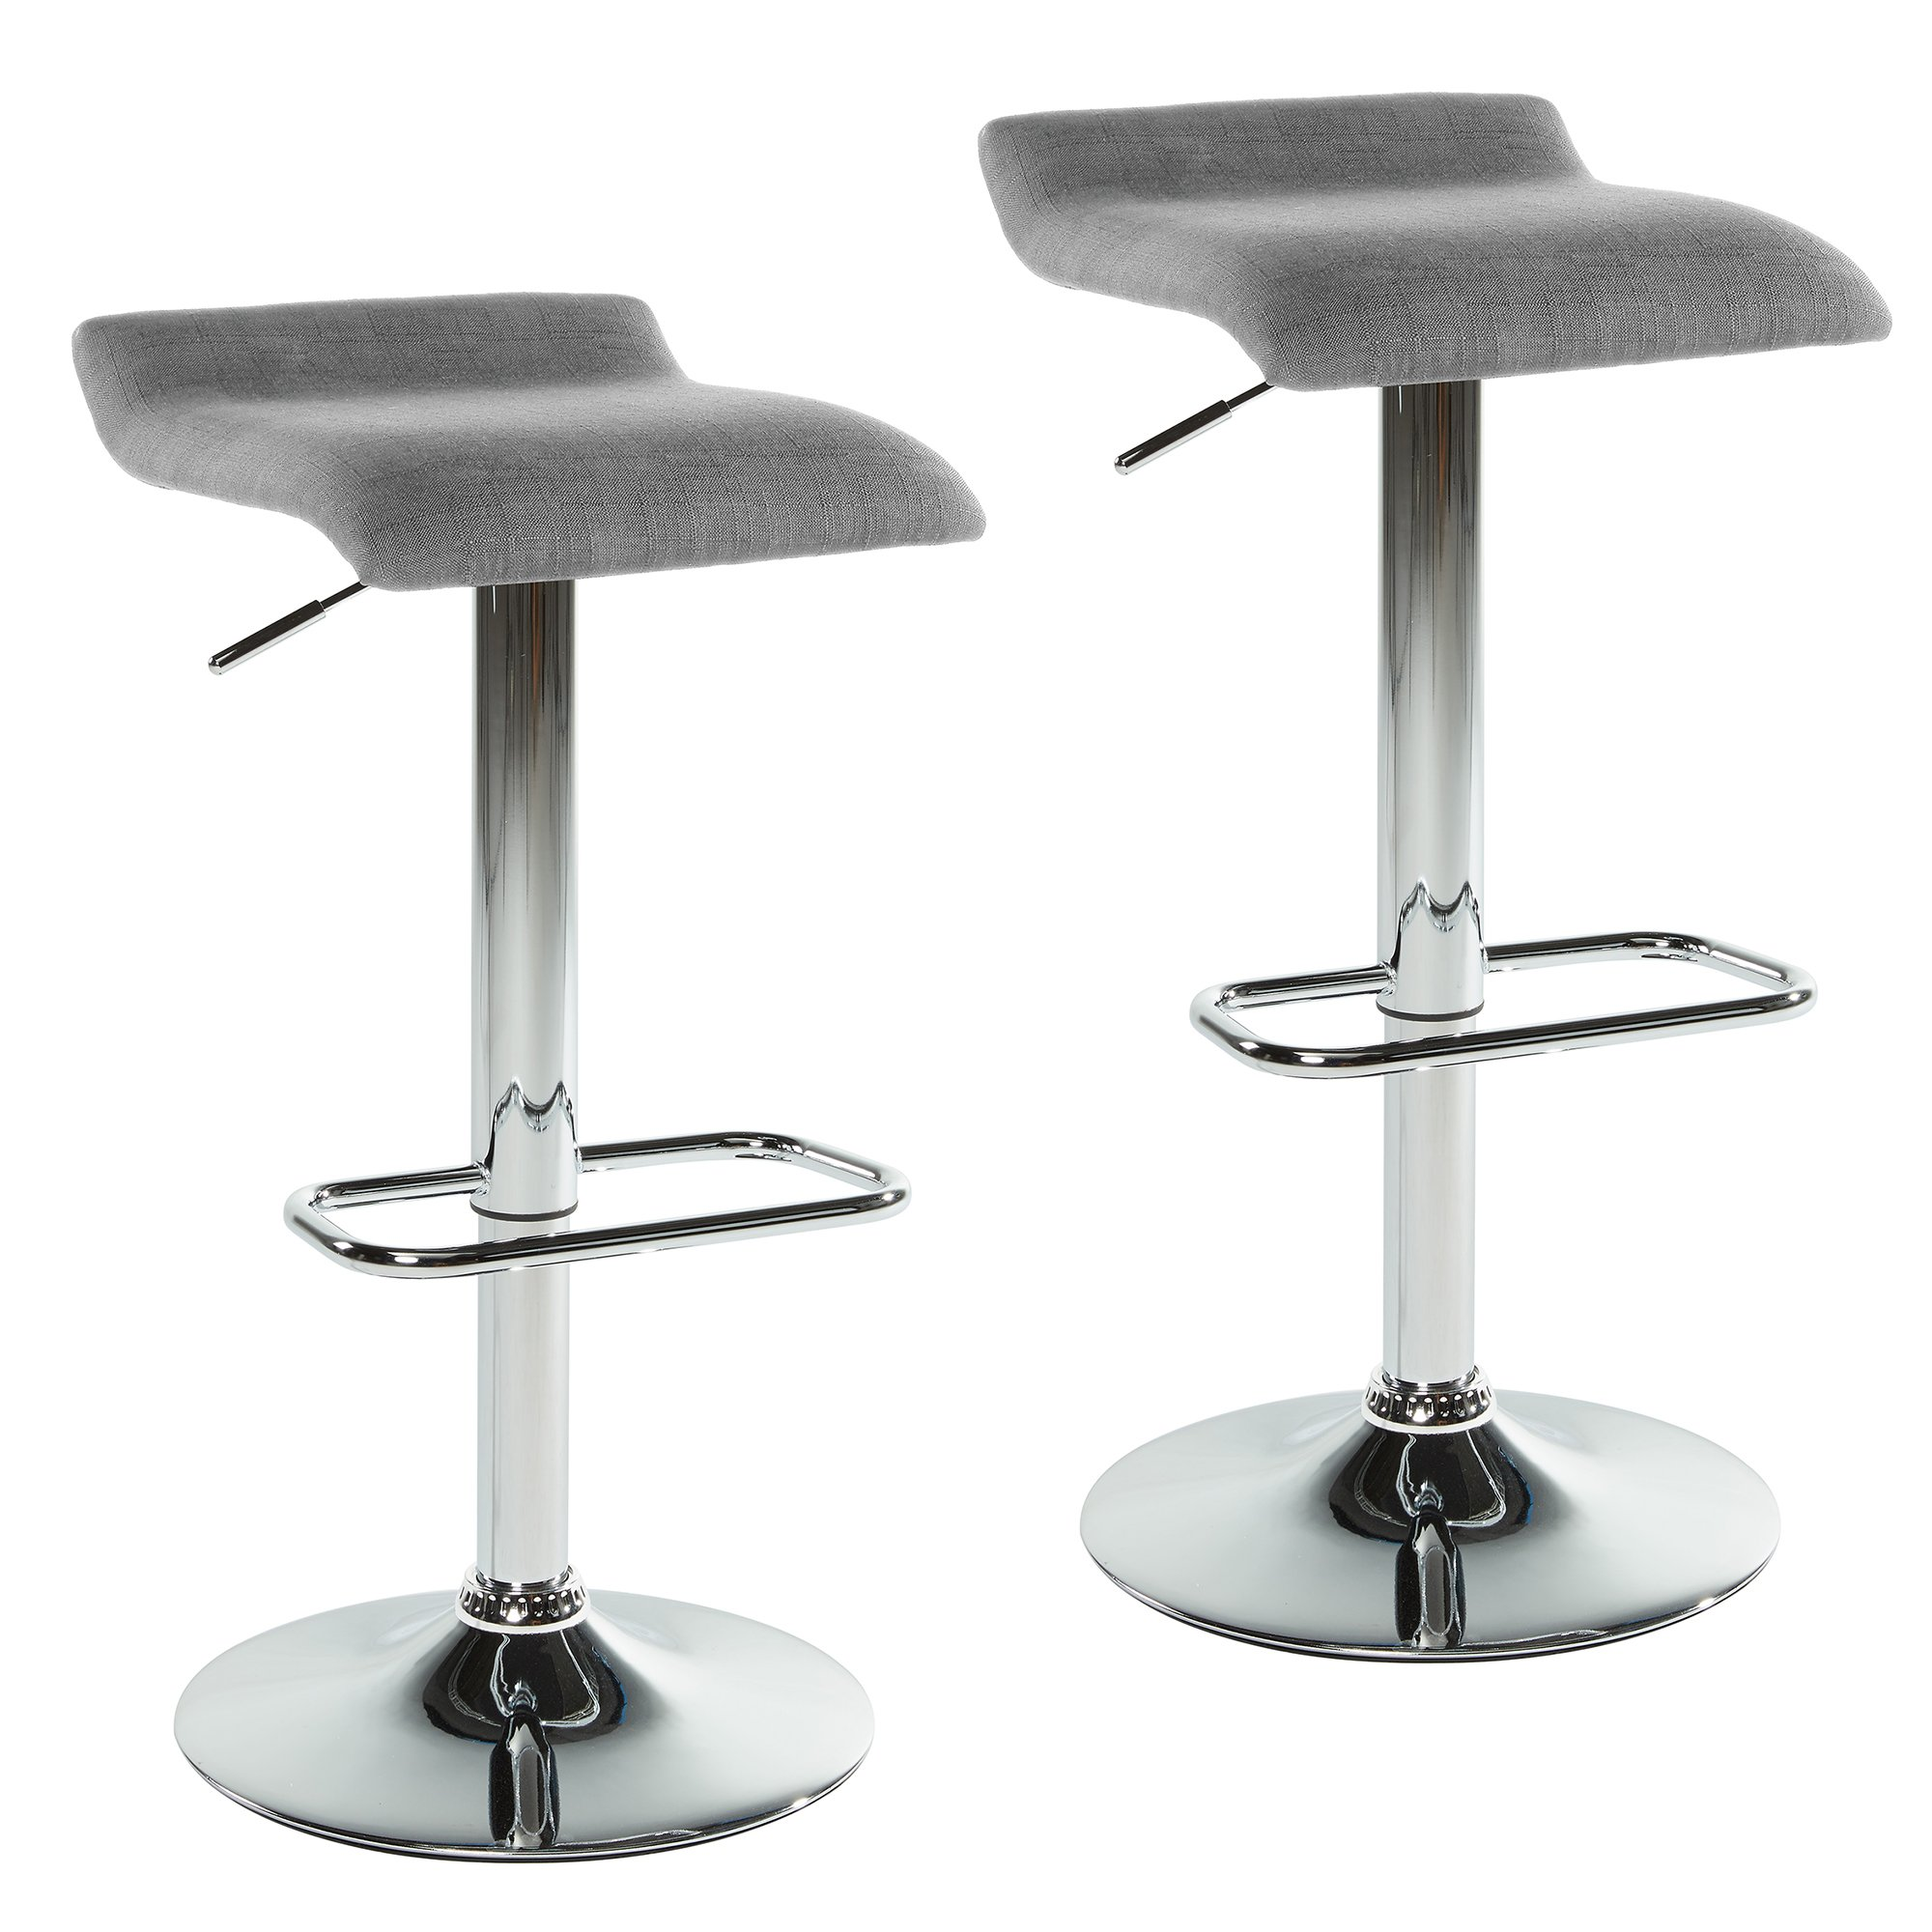 Rally Set of 2 Contemporary Fabric Upholstered and Metal Base Adjustable Swivel Stool in Grey